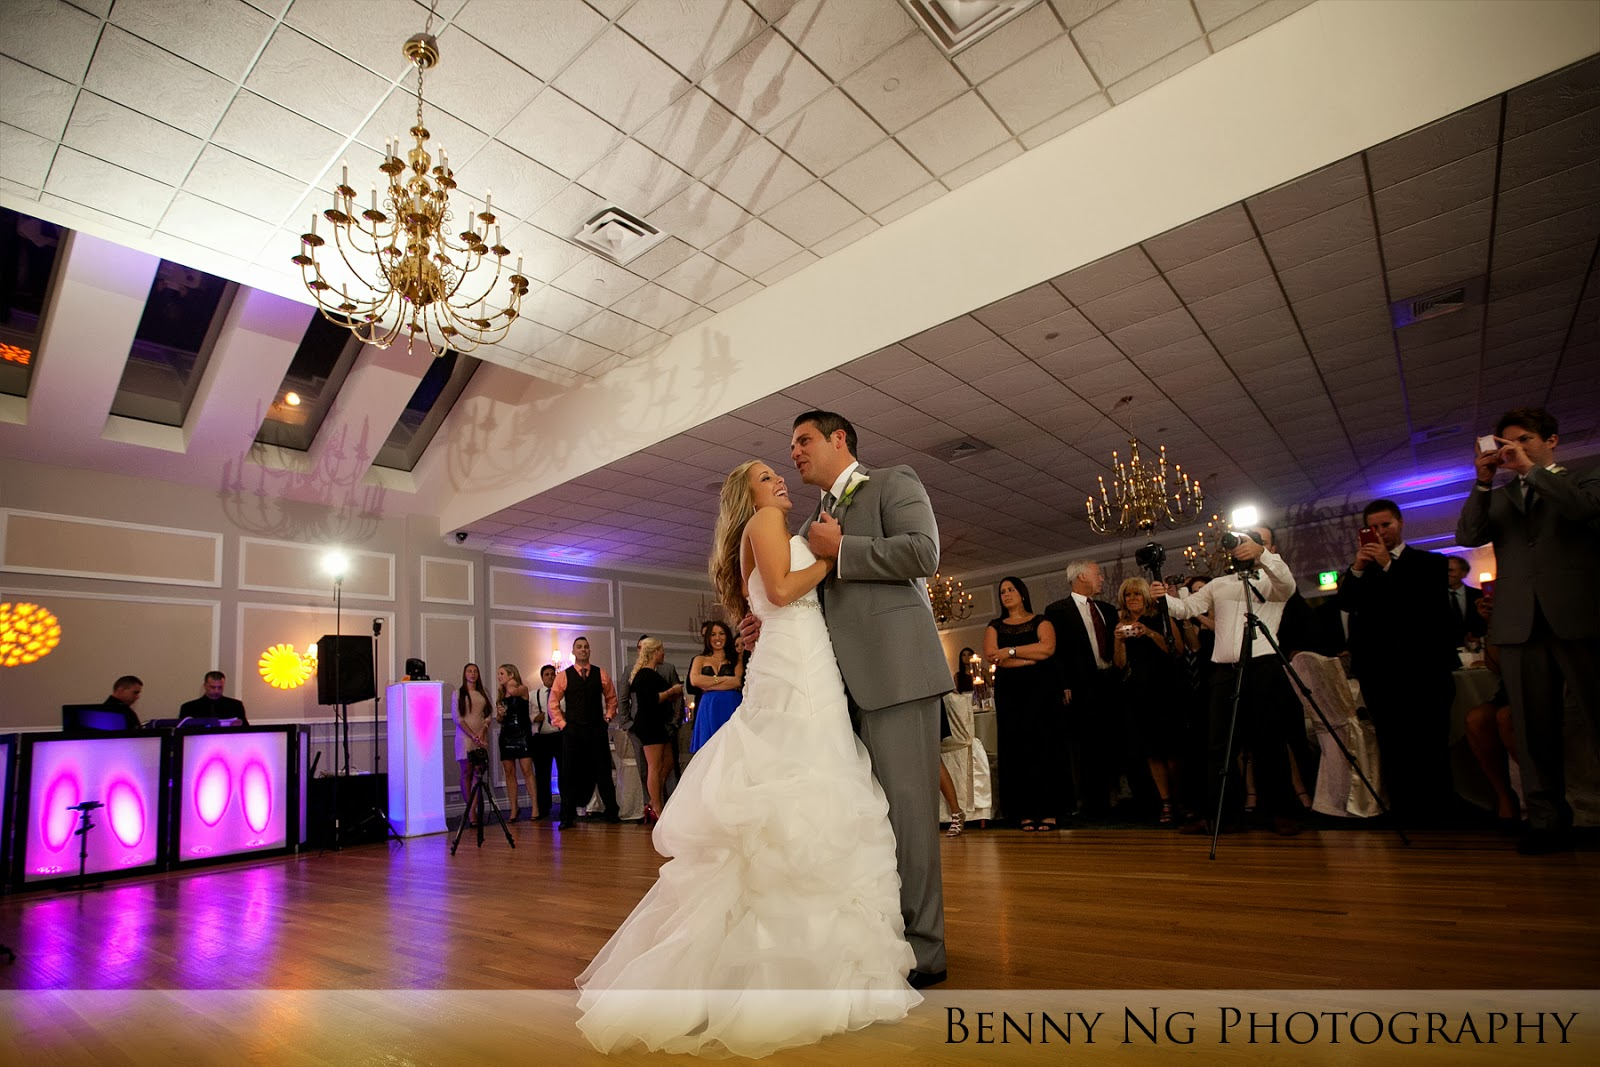 gabe norwood wedding - photo #47